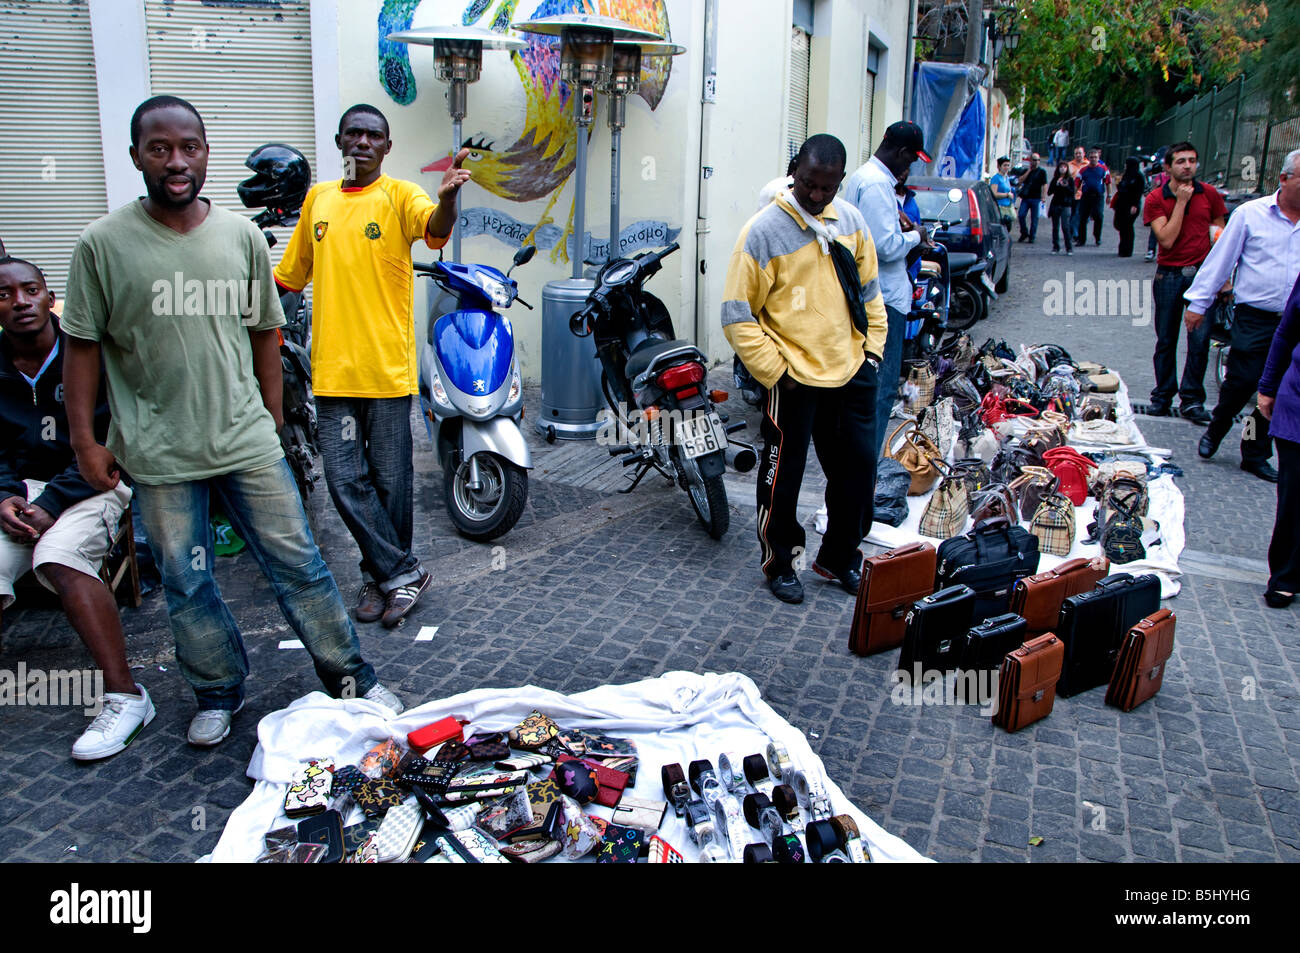 Athens Plaka shopping district underground clandestine immigrant immigration from Africa selling fashion bags Greek - Stock Image